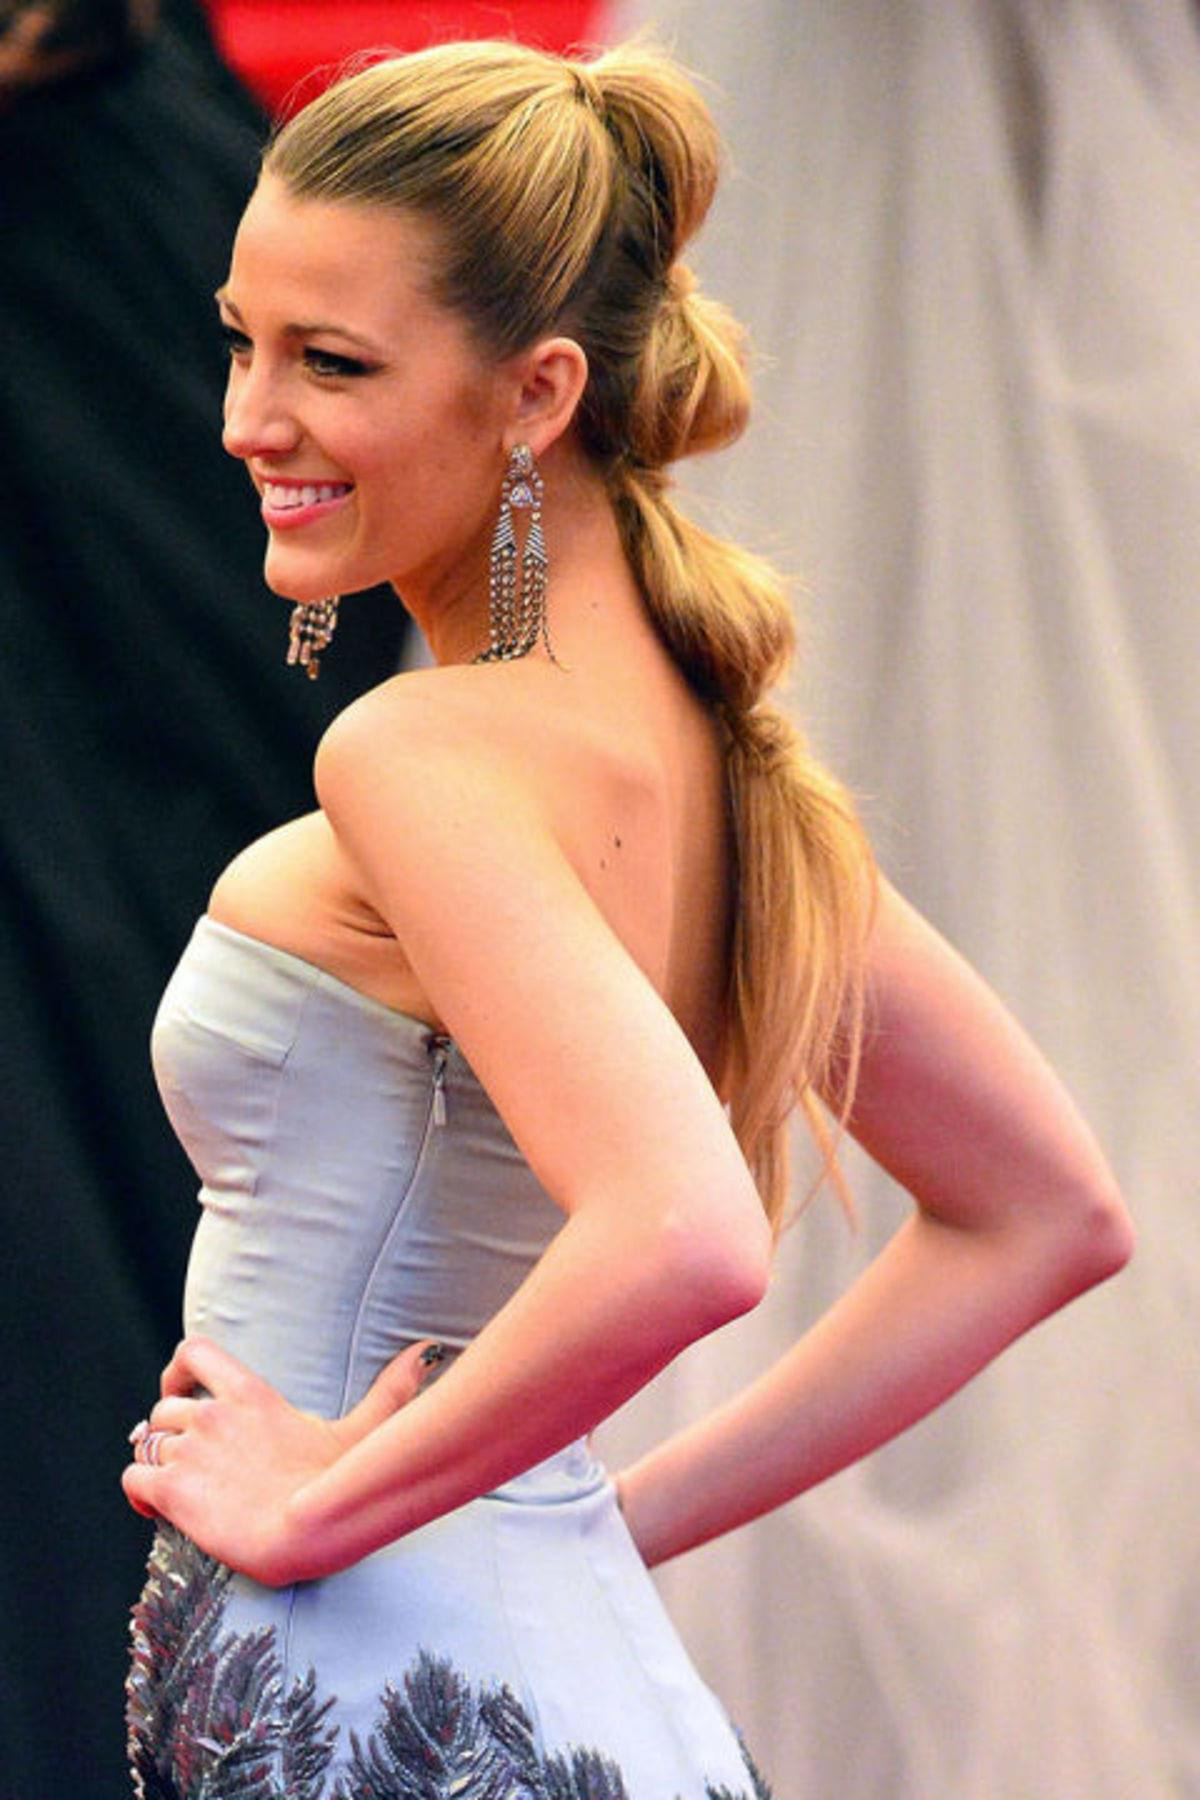 54bd0fa9039df_-_hbz-the-list-ponytails-09-blake-lively-lg